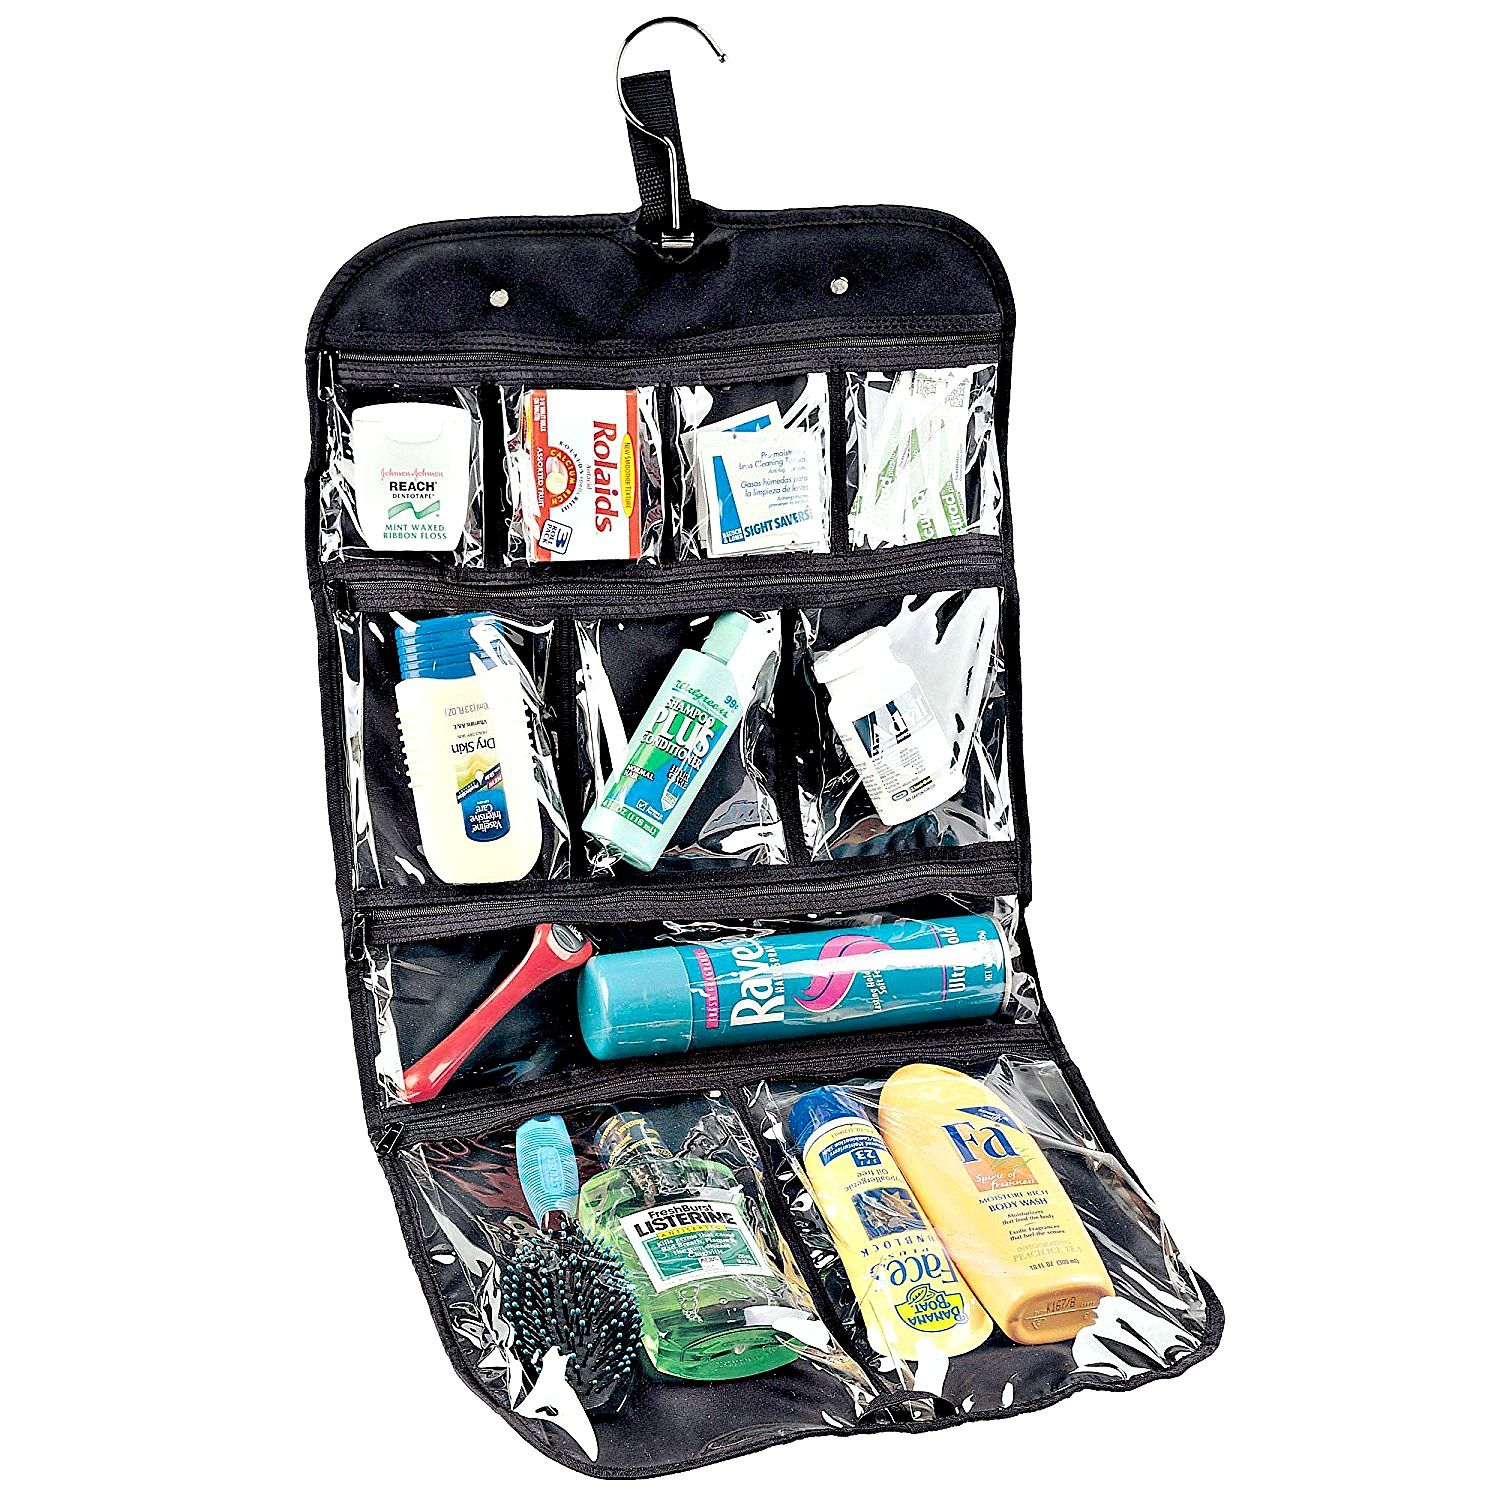 51e4b74ddccc What's the Best Hanging Toiletry Bag for Women? | Travel tips | Mens ...